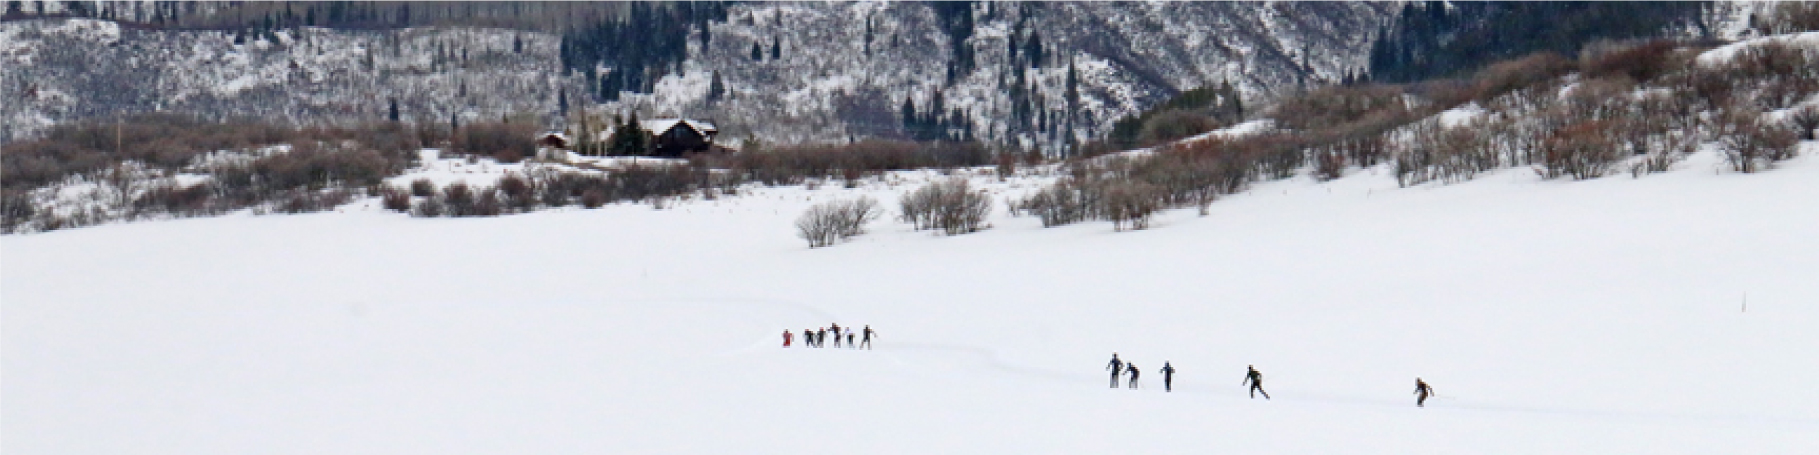 Ski-Haus-Steamboat-Springs-Colorado-Cross-Country-Skiing02